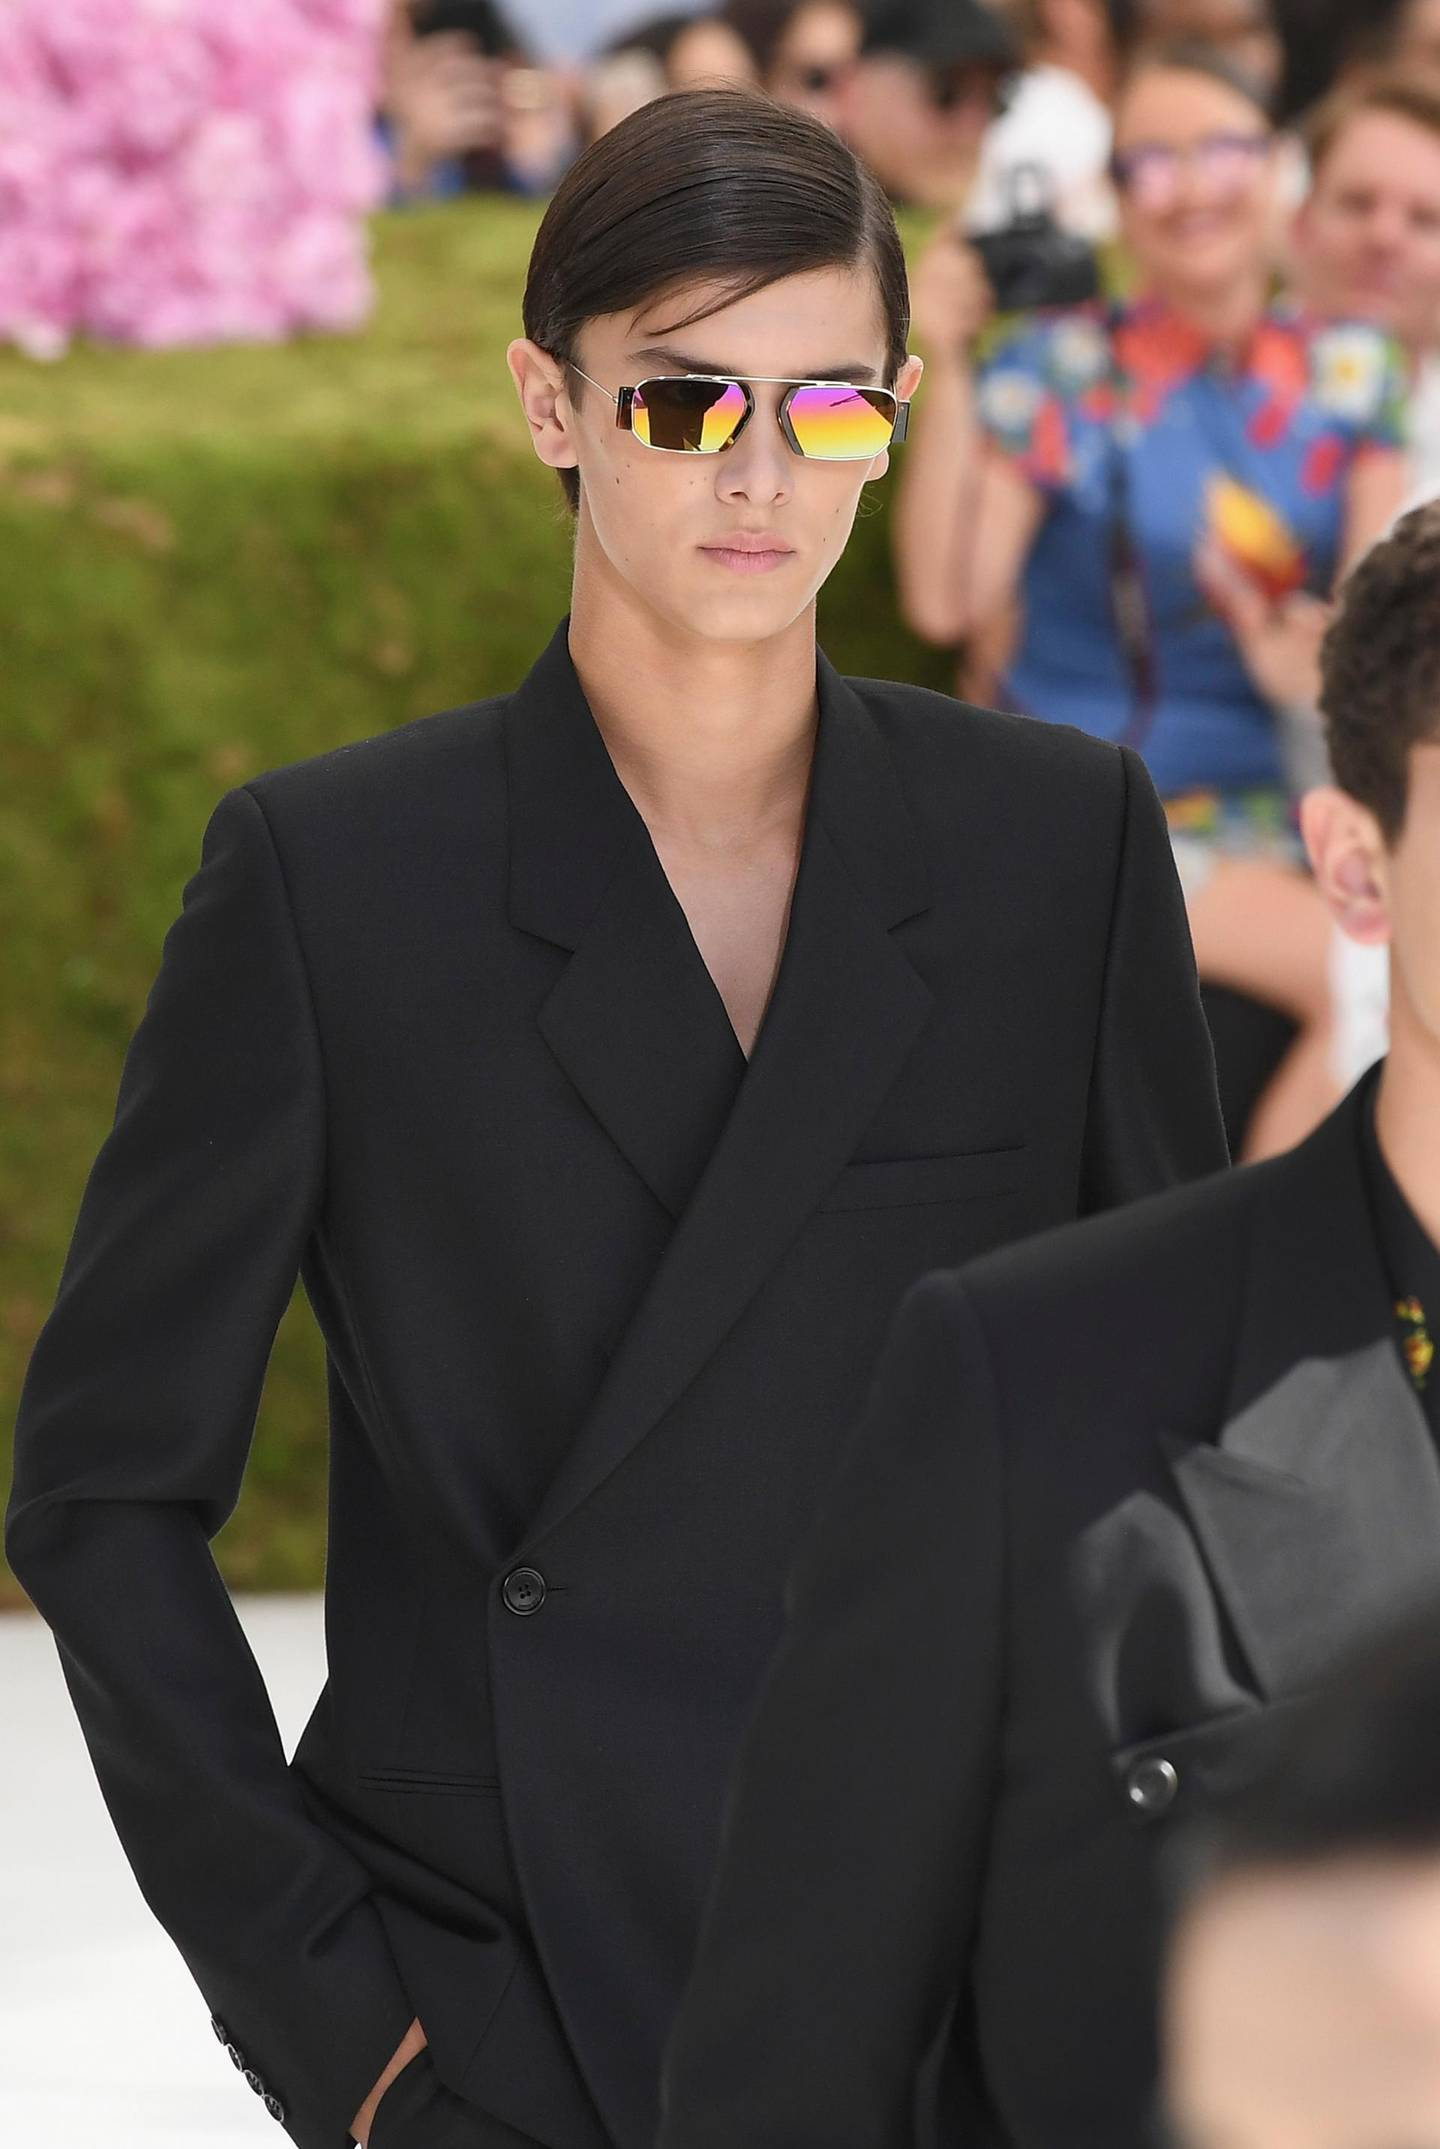 PARIS, FRANCE - JUNE 23:  Prince Nikolai of Denmark walks the runway during the Dior Homme Menswear Spring/Summer 2019 show as part of Paris Fashion Week on June 23, 2018 in Paris, France.  (Photo by Pascal Le Segretain/Getty Images)